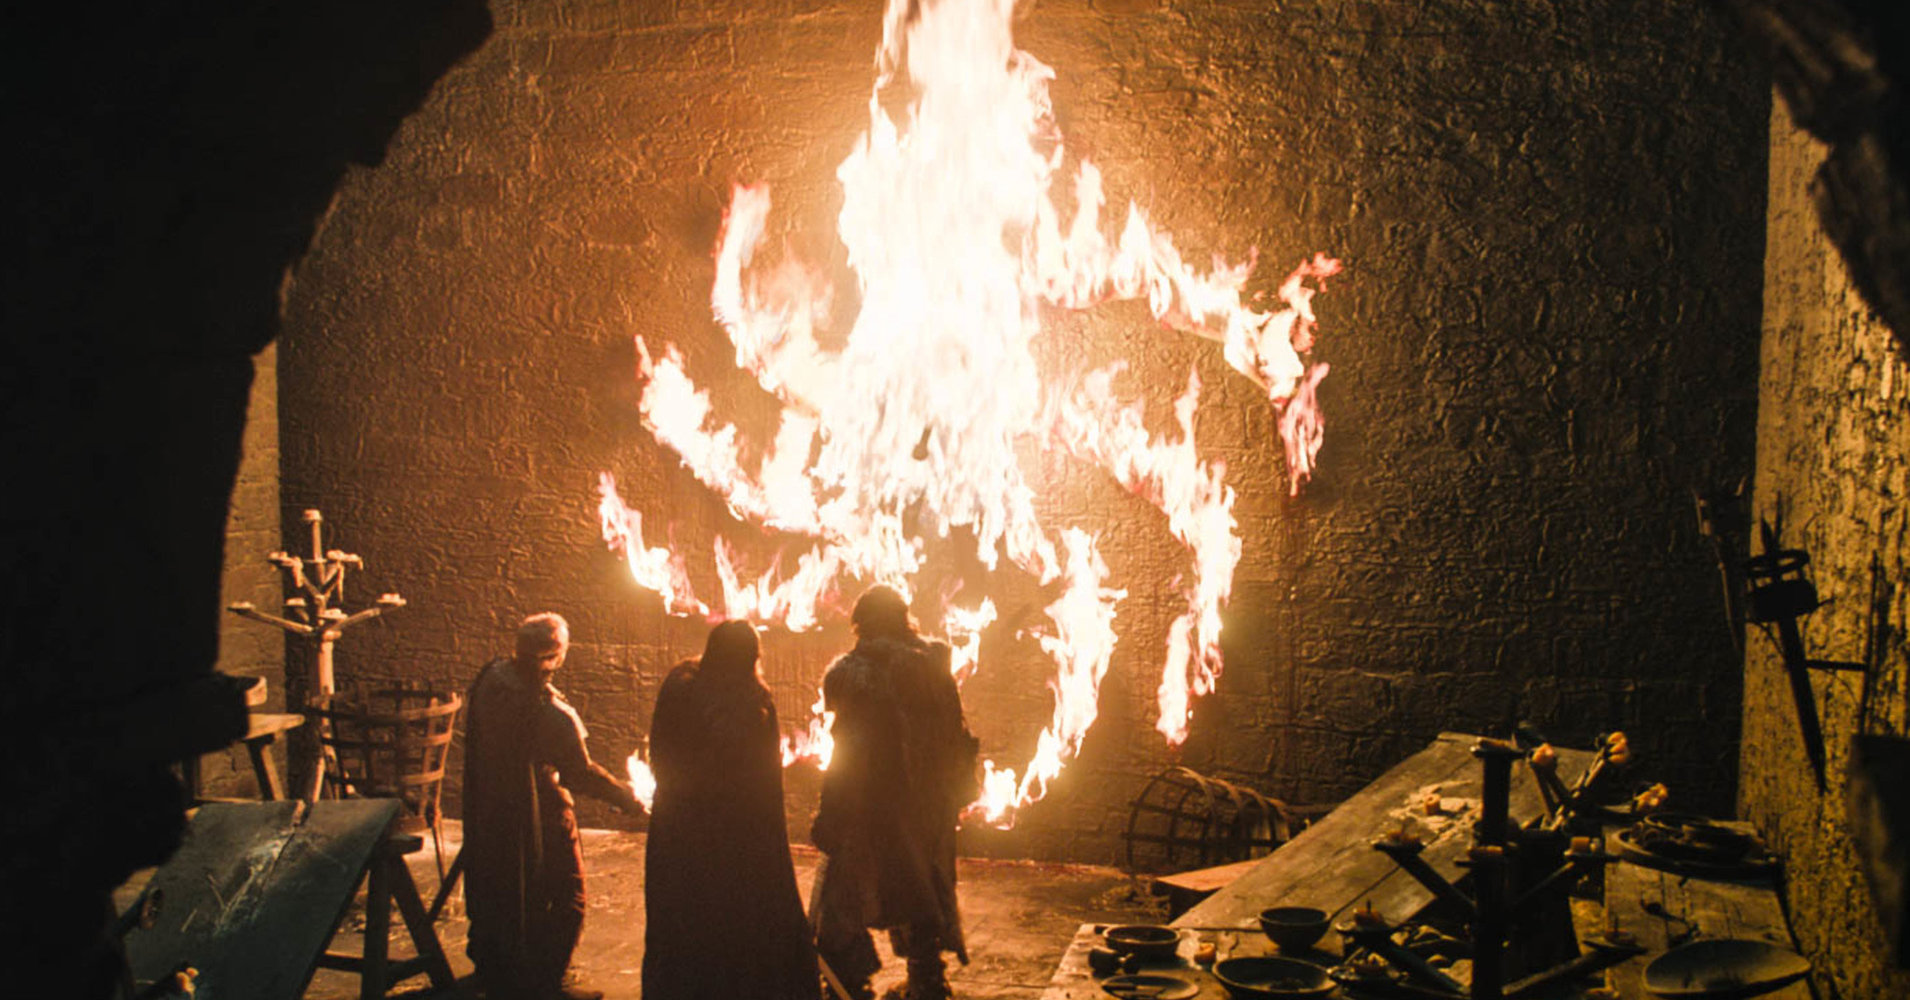 Here's What Those Cryptic 'Game Of Thrones' Symbols May Mean